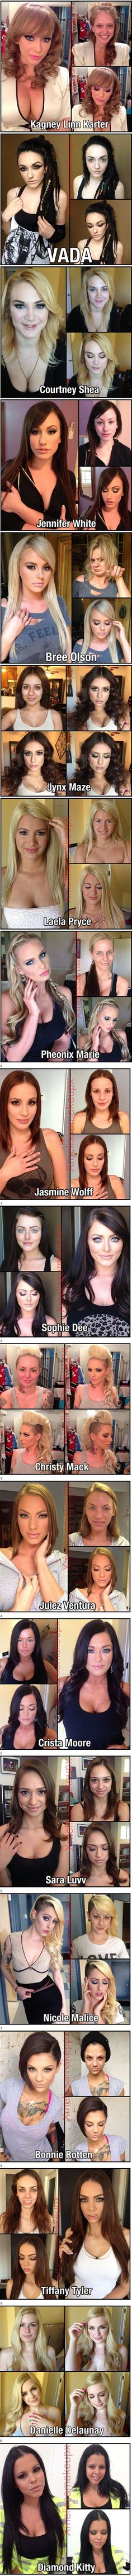 View P0rnst@rs Without Makeup, What a difference make up makes - Link Up Videos - Videos from all over the web On Link Up Videos